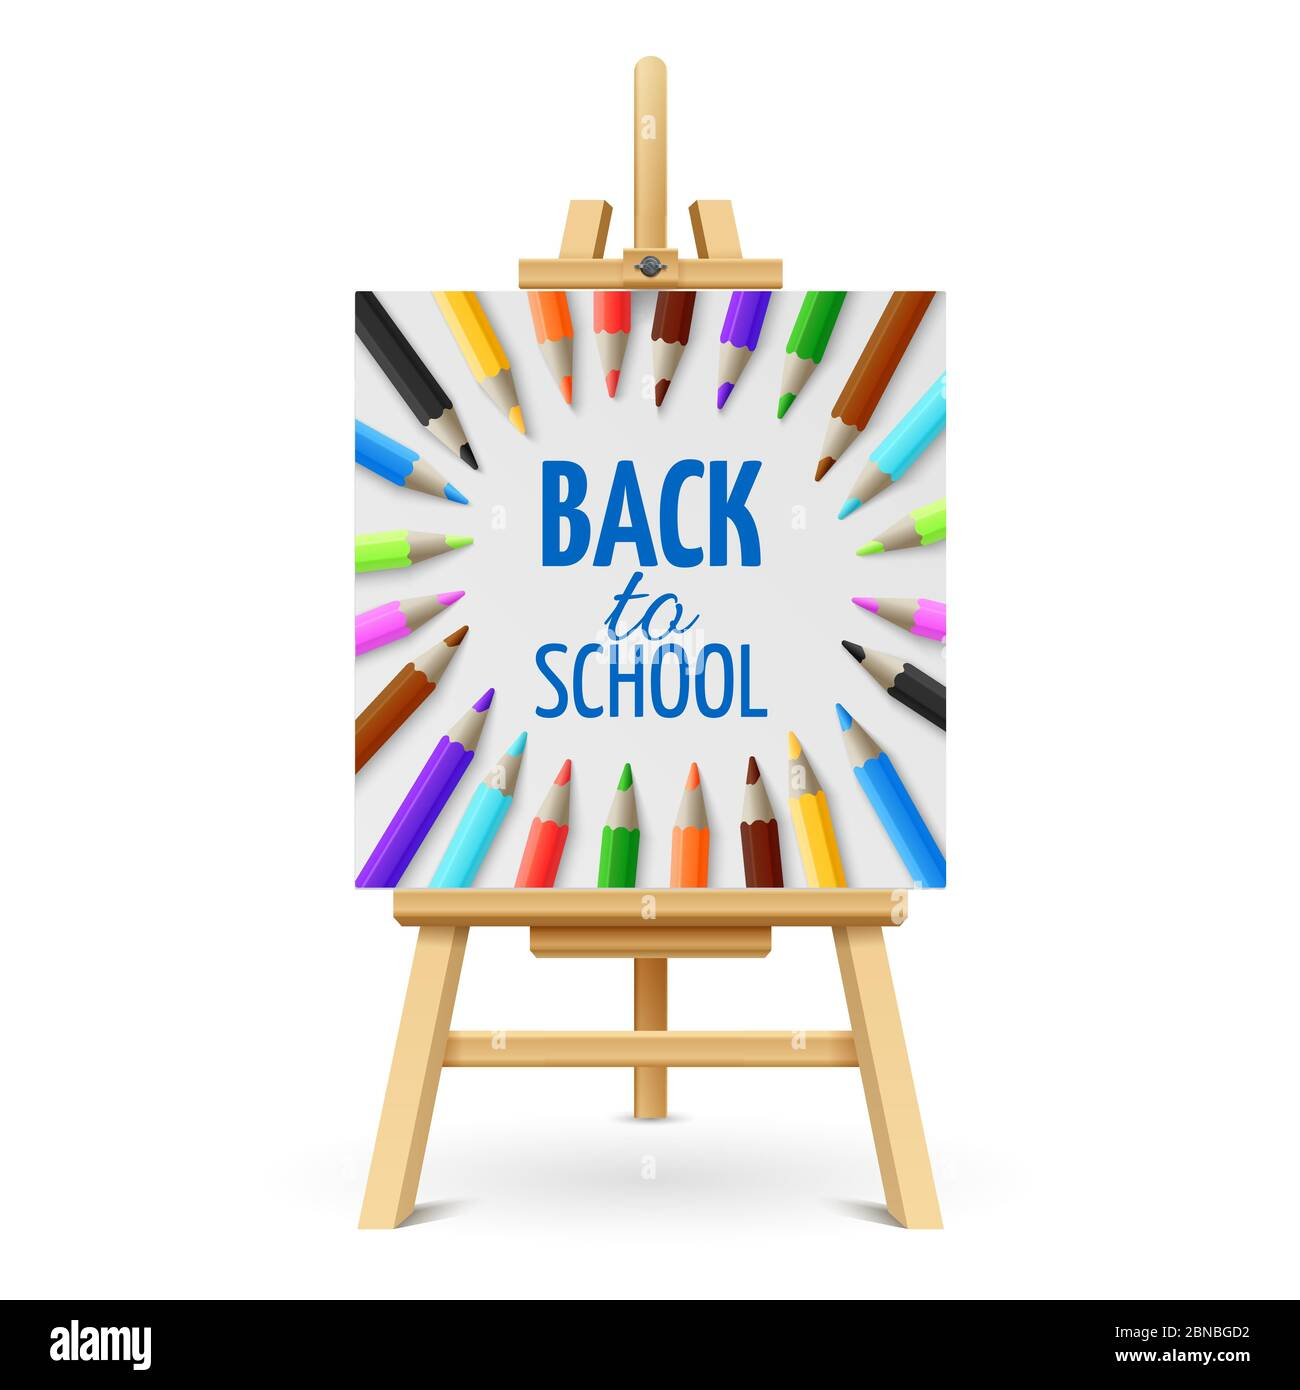 Learning and school education vector concept. Back to school background with 3d colored pencils on wood easel isolated on white background. Illustration of back school on easel Stock Vector